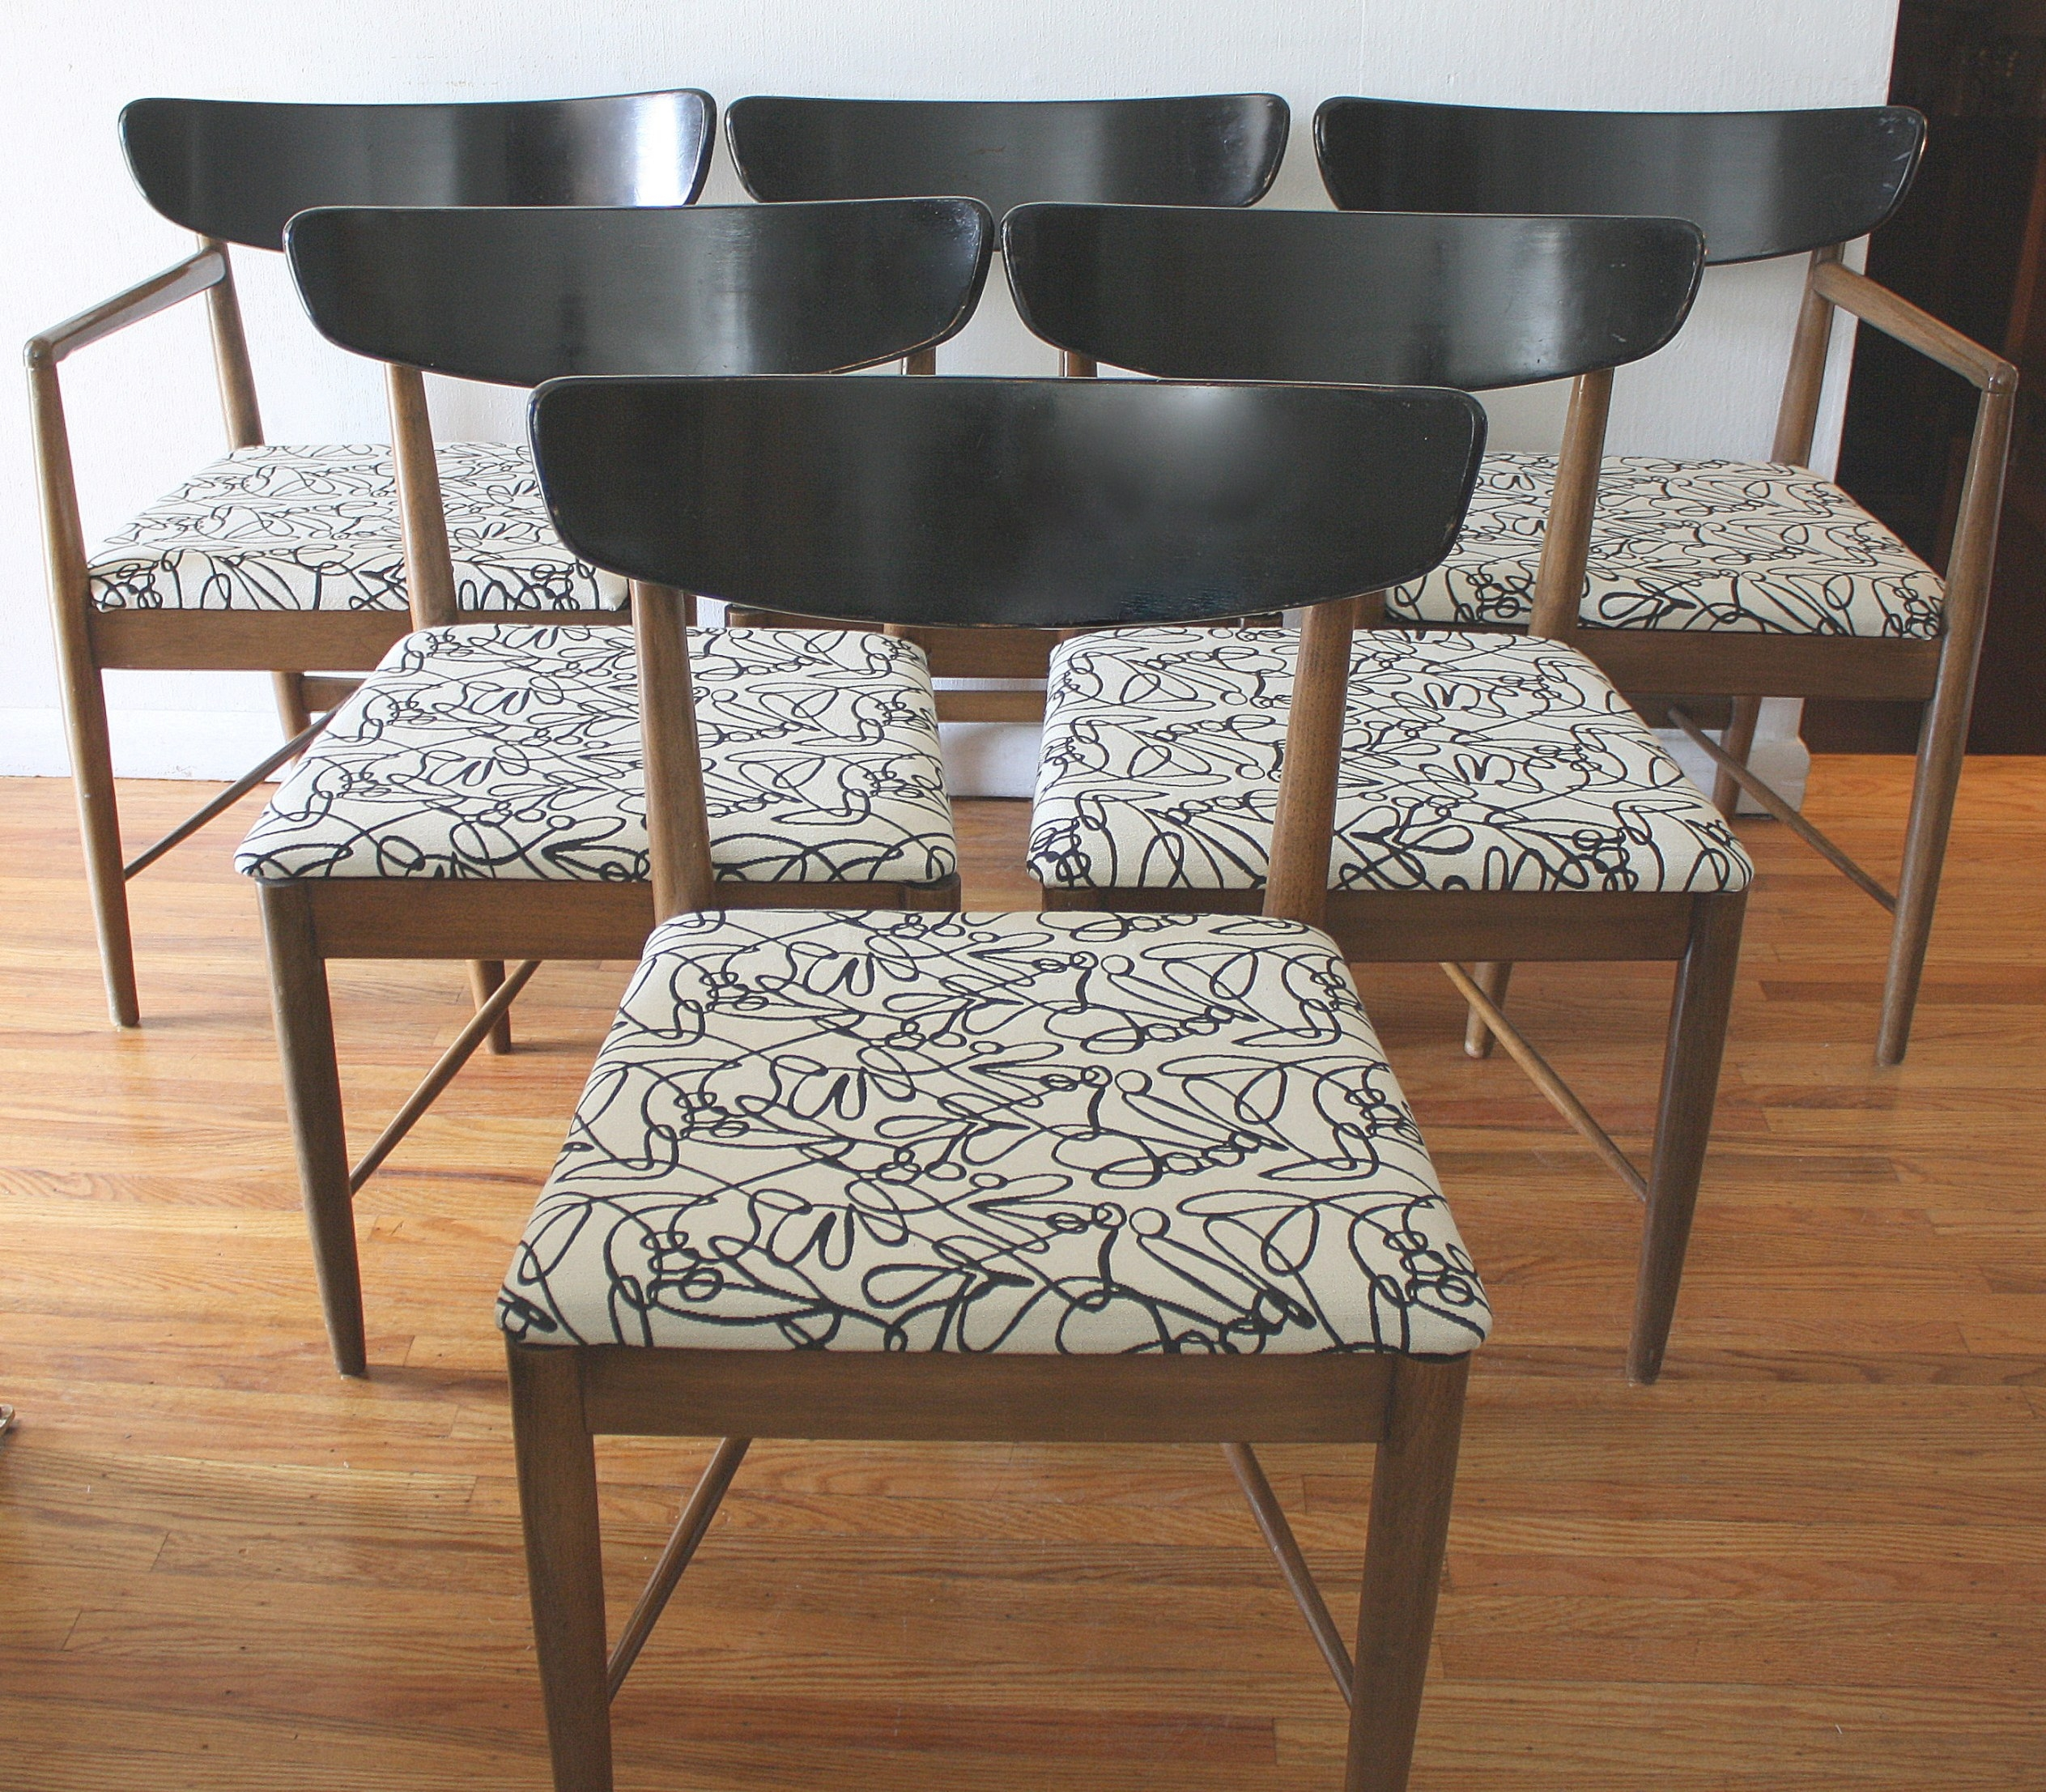 Mid Century Modern Dining Chair Sets | Picked Vintage inside Mid Century Modern Dining Set